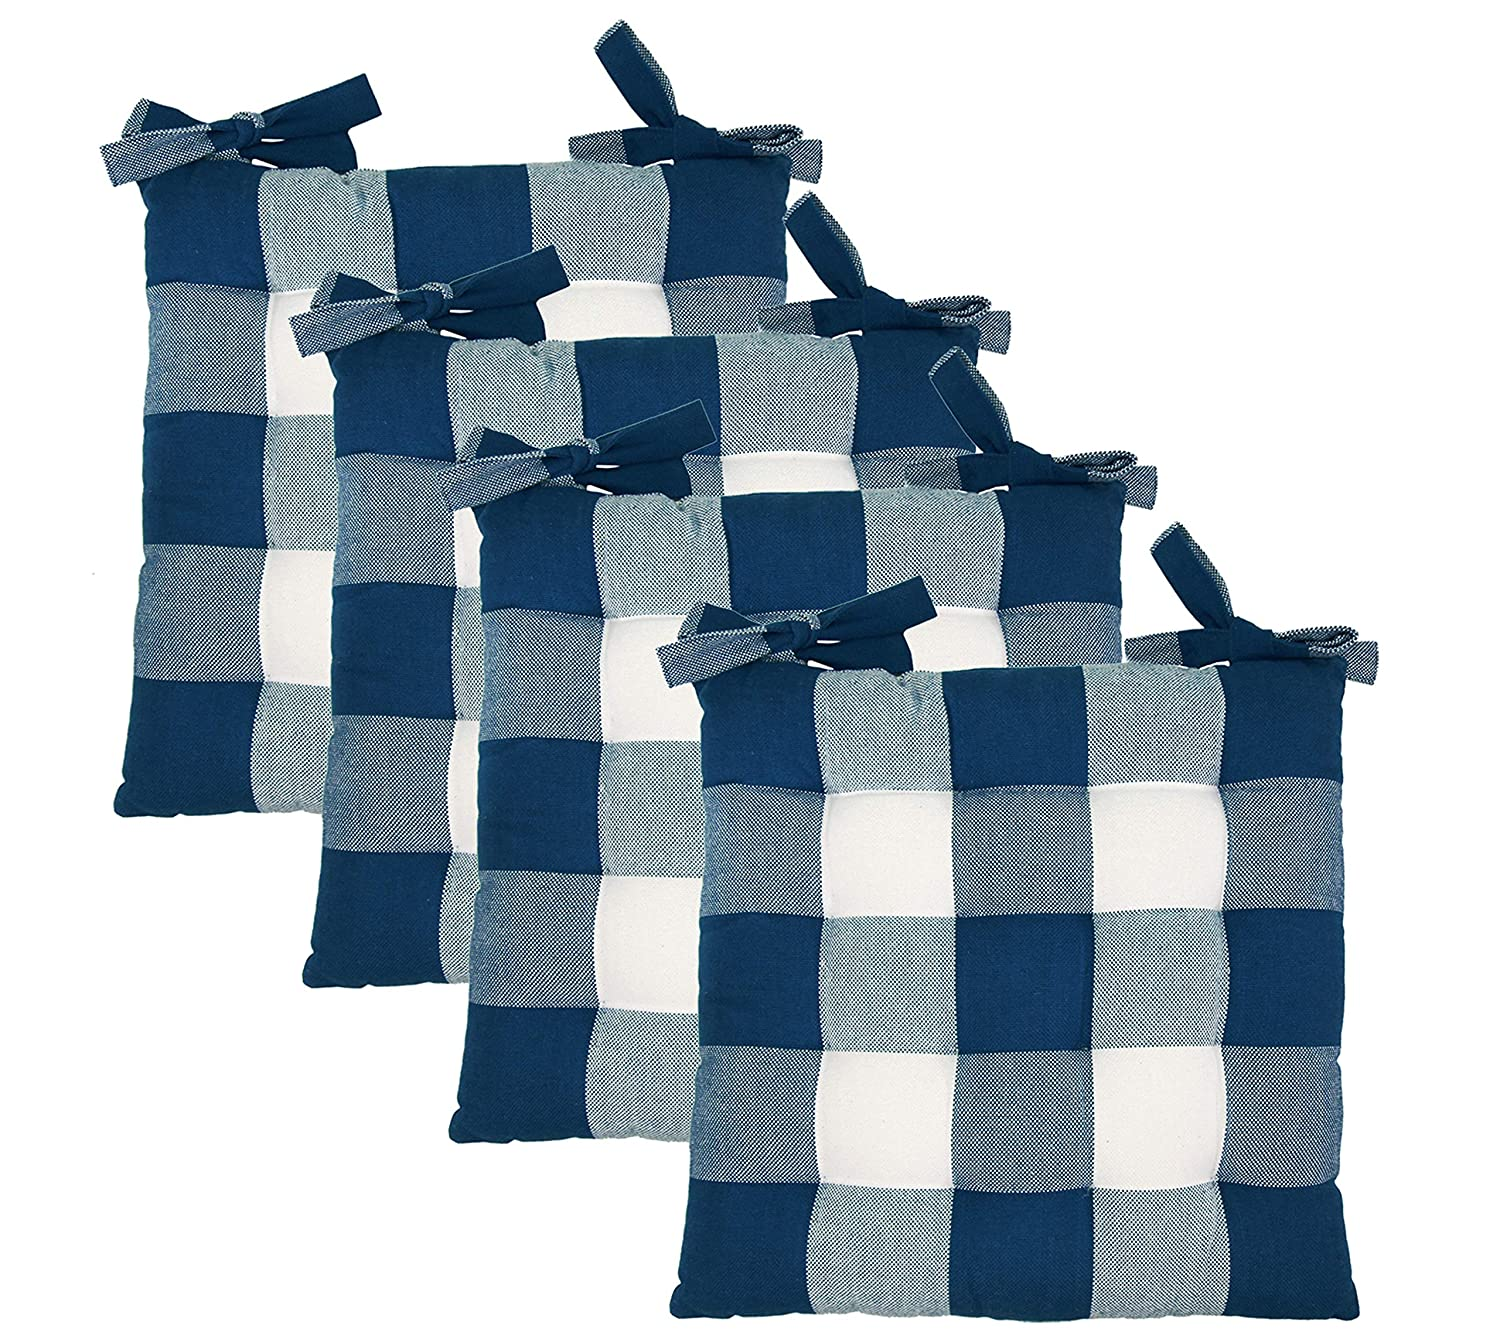 Cotton Craft - Set of 4 - Buffalo Check Chairpad - Navy - 17x17 Inches- Dining Chair Pad Cushion with Ties- Classic Design- Easy Fit to Chair